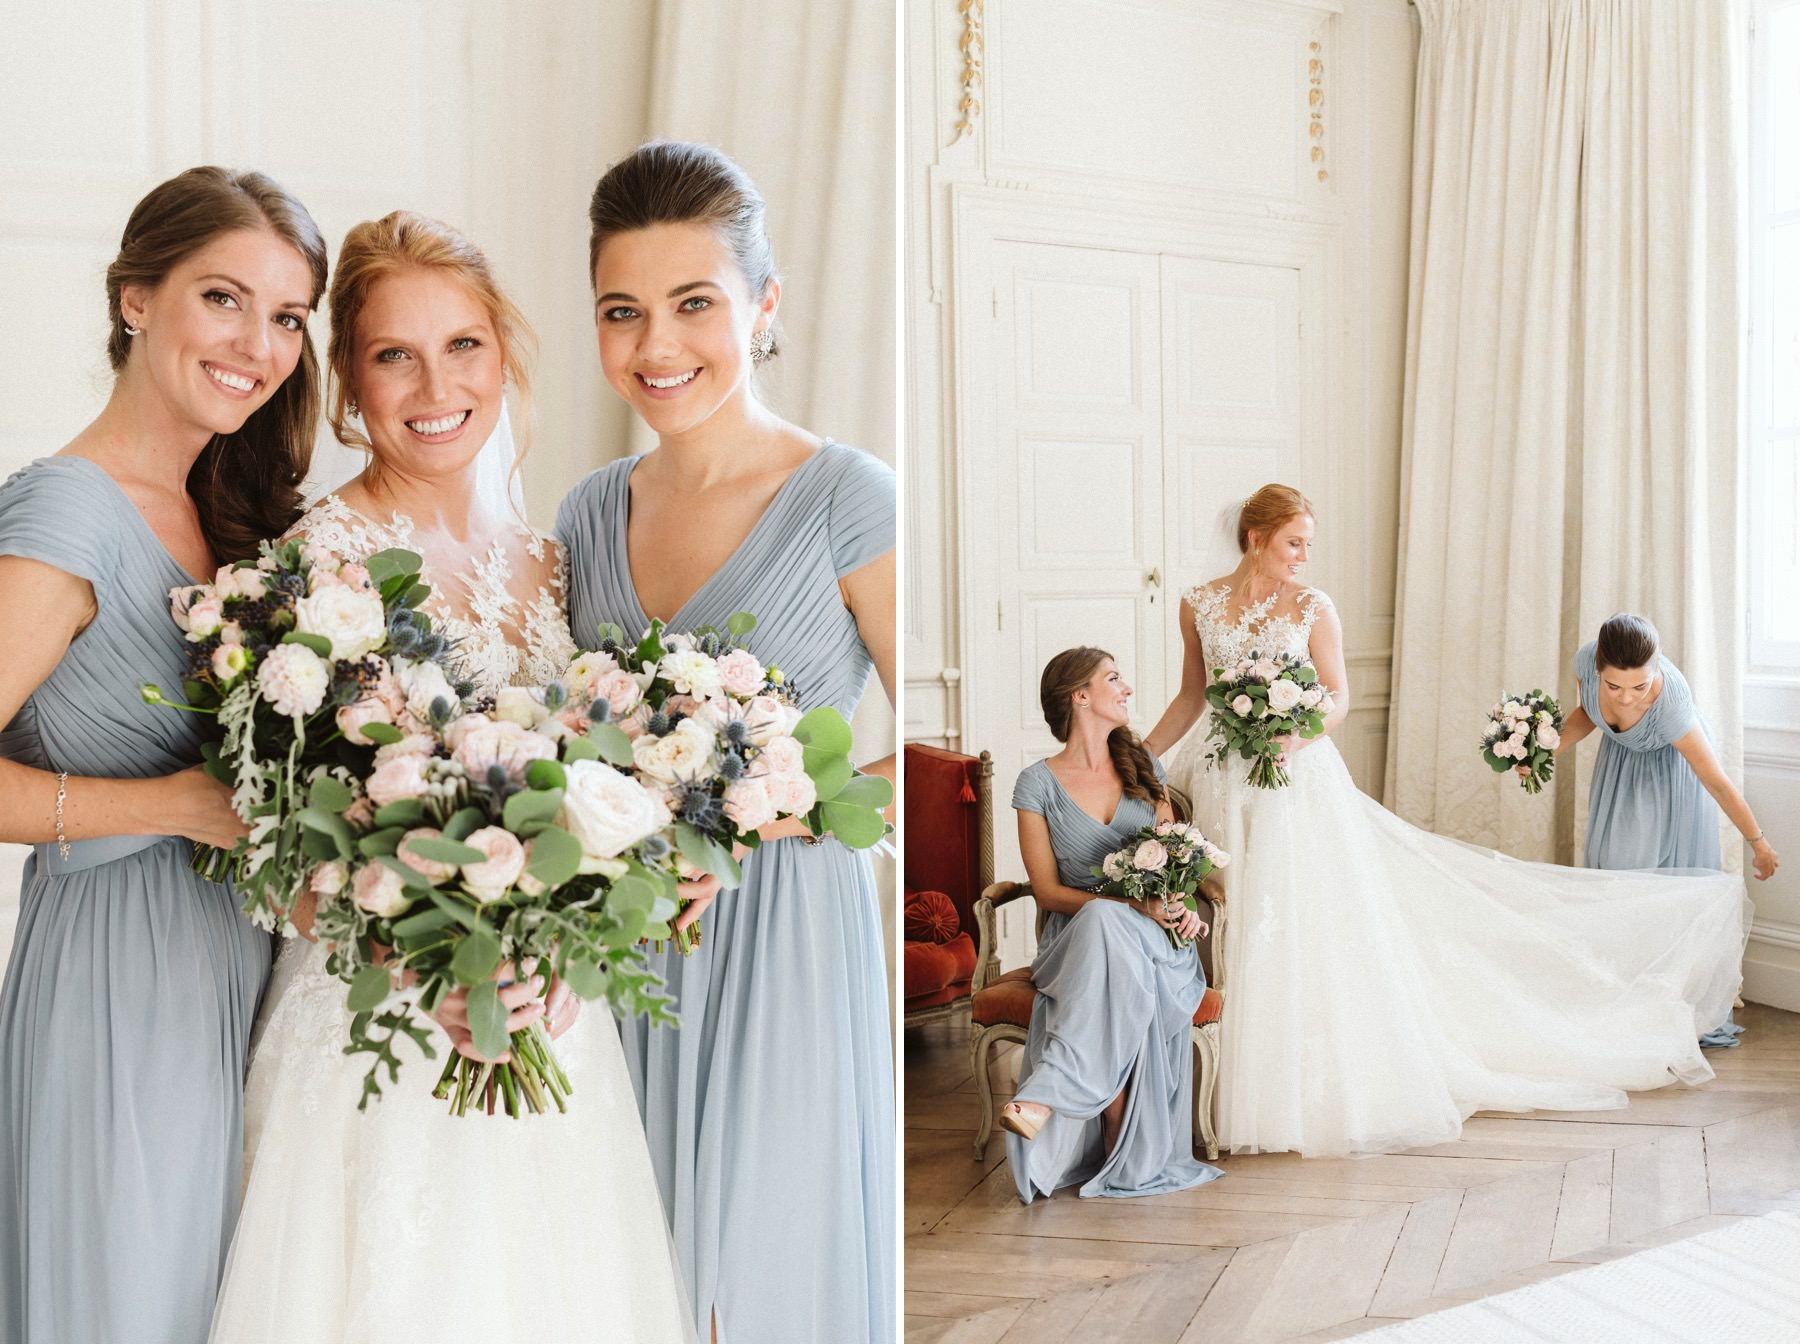 bridesmaids at wedding in France